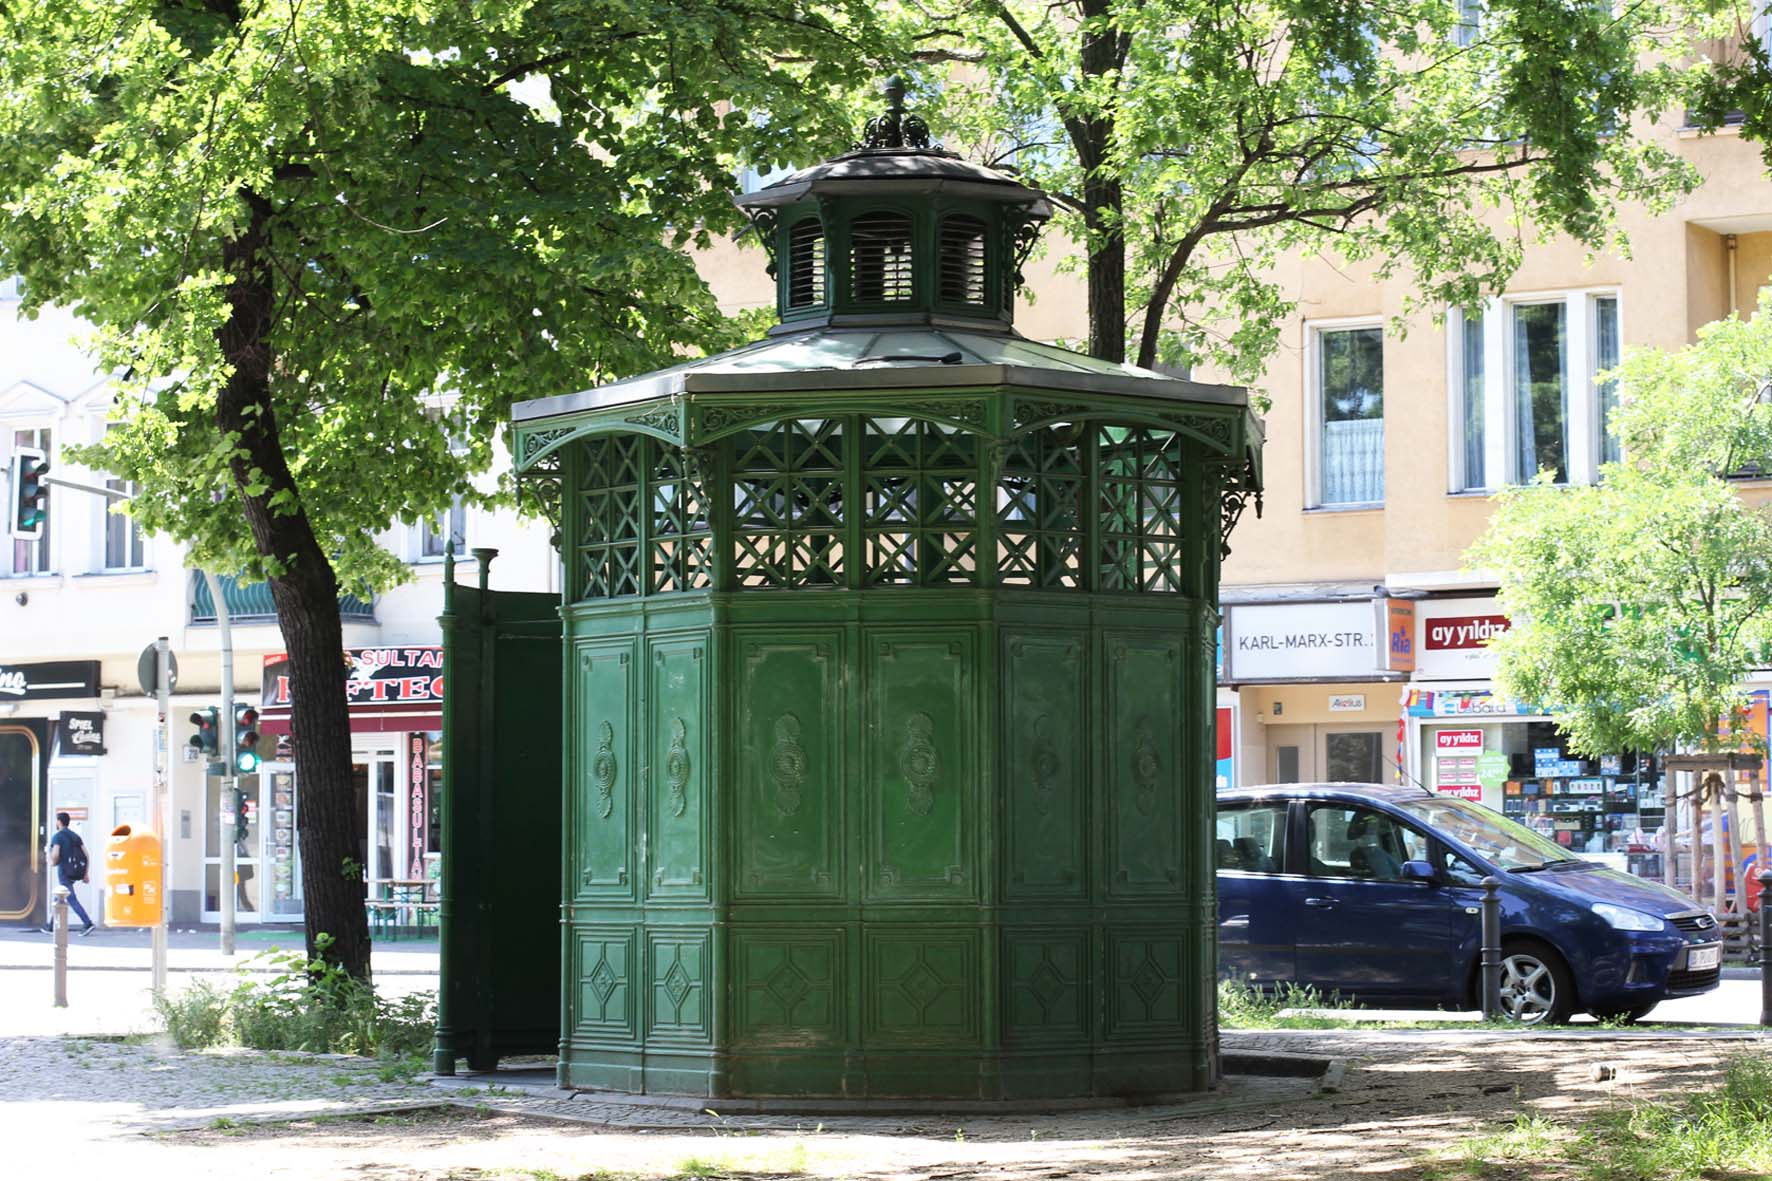 Café Achteck - Karl-Marx-Strasse - an example of Berlin's classic 19th century green cast iron public toilets